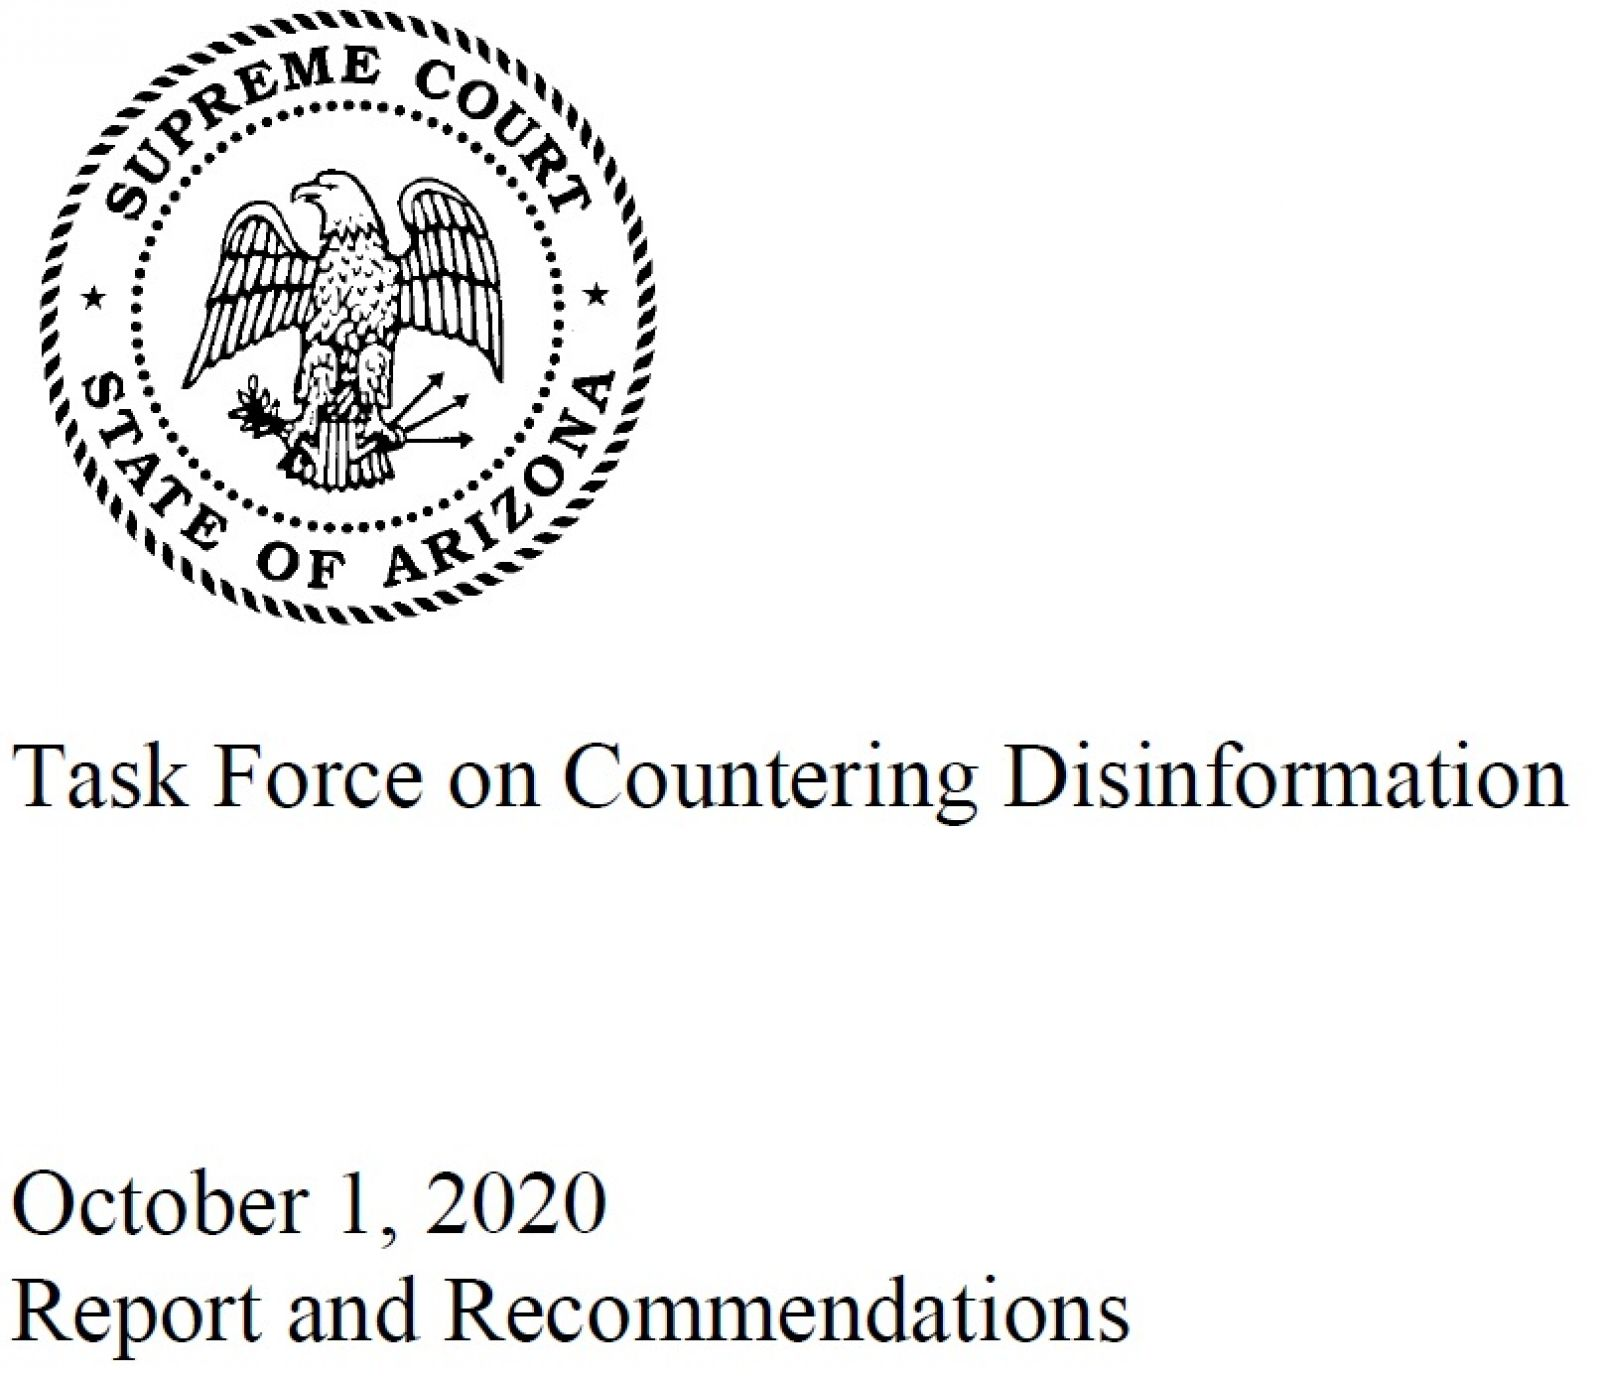 Task Force on Countering Disinformation Report Cover banner image